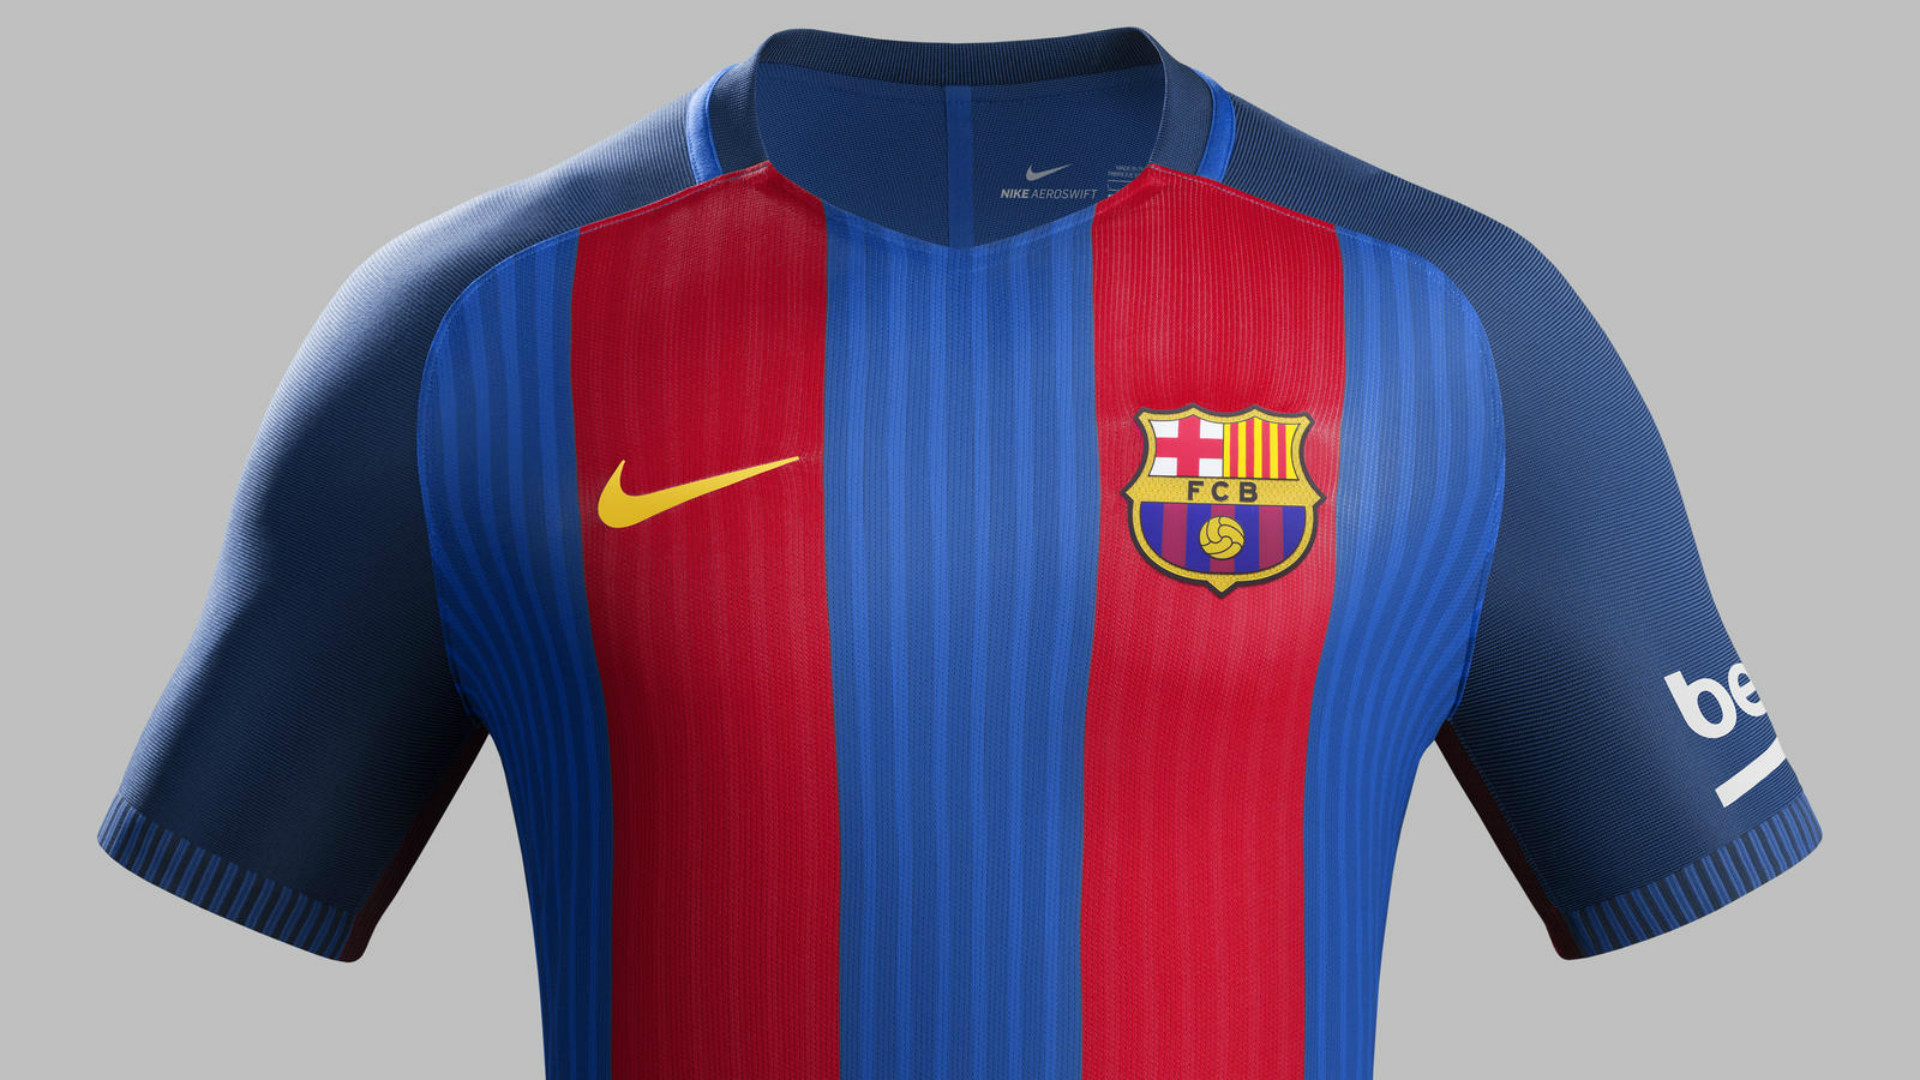 b87f364c4 Barcelona revert to tradition with new kit - Sports5050.com